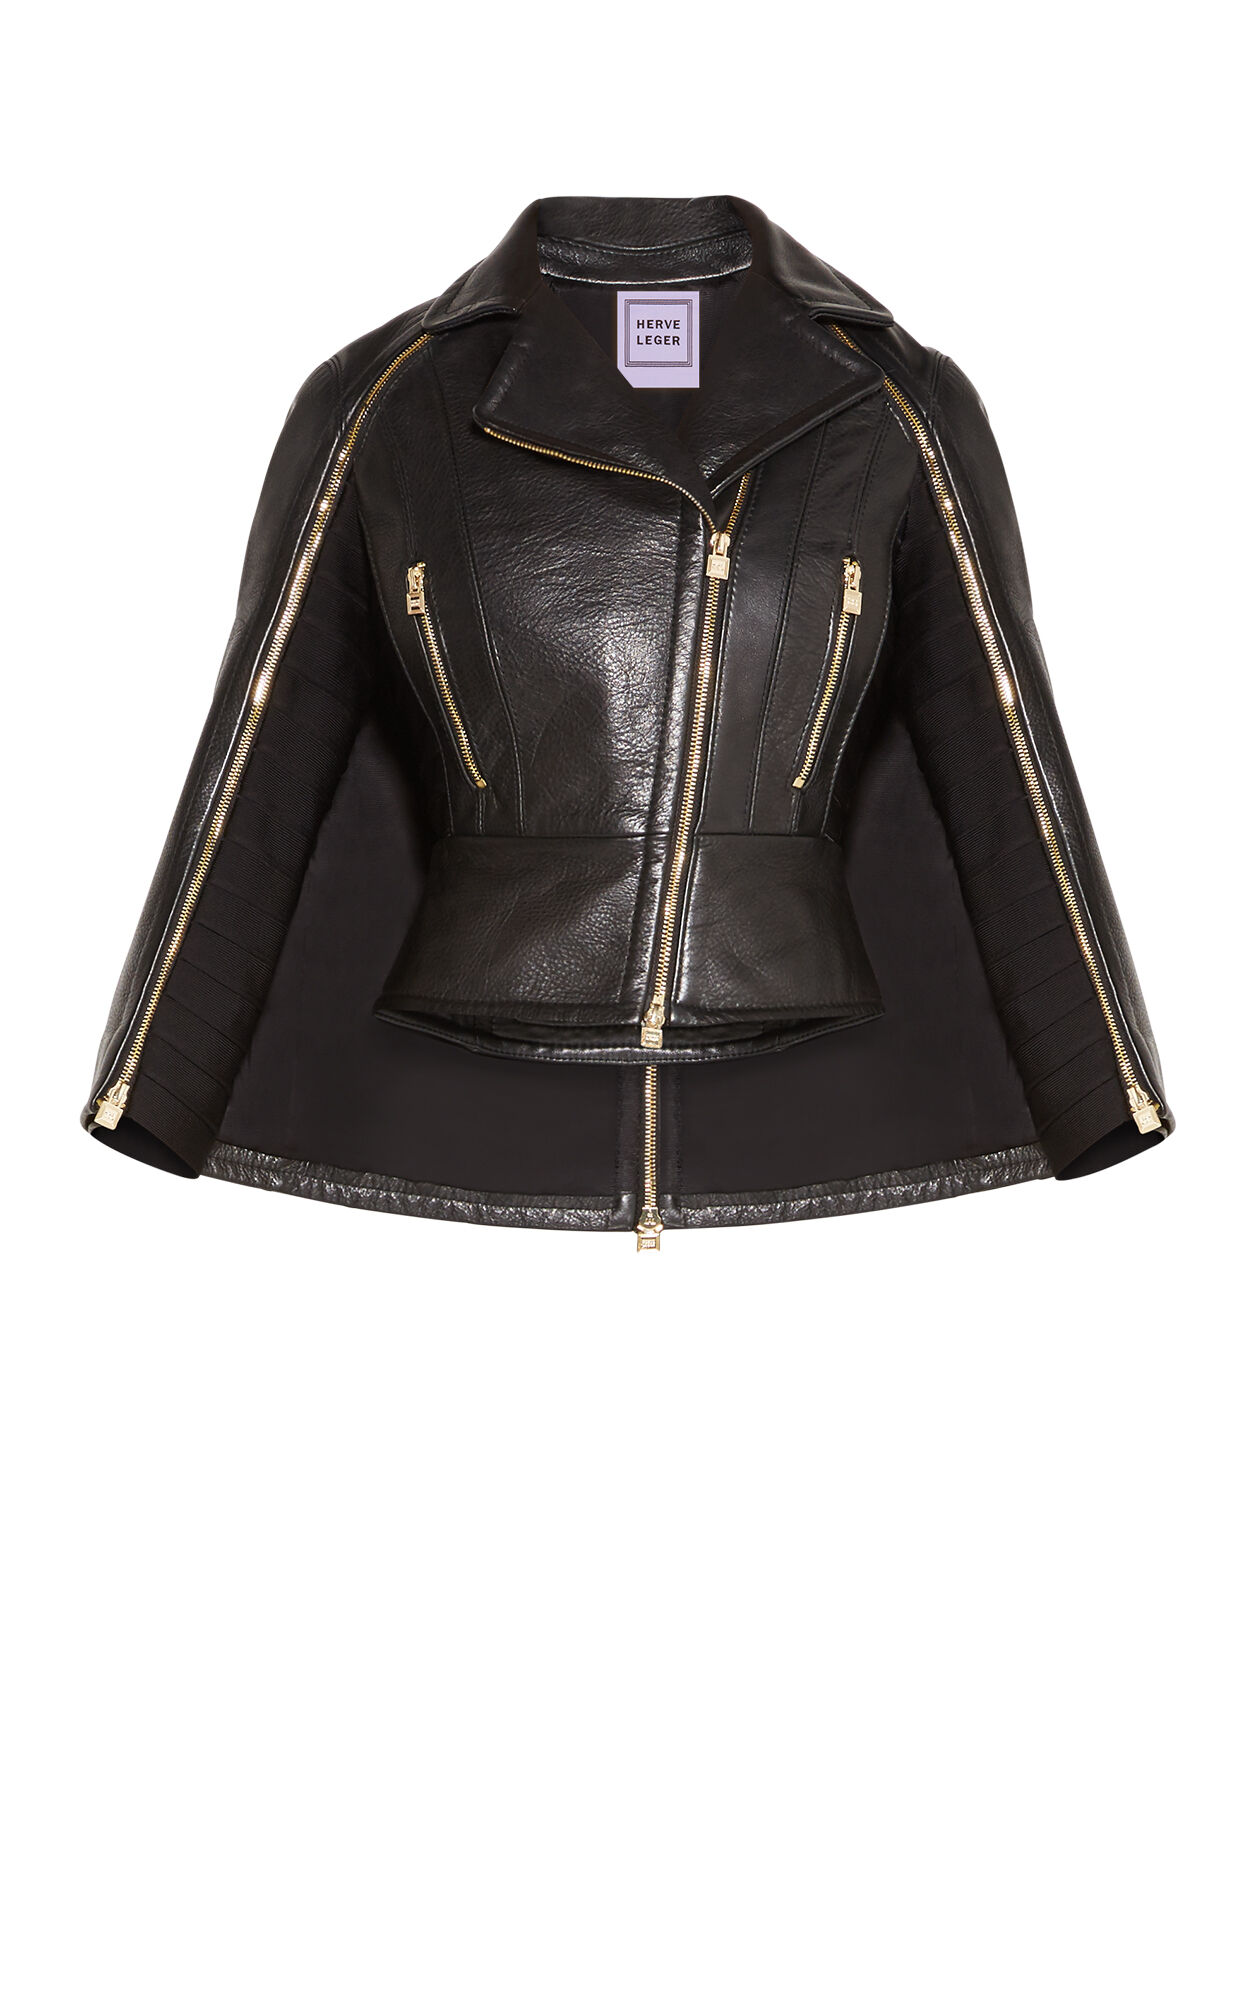 Bennet Leather Cape Jacket